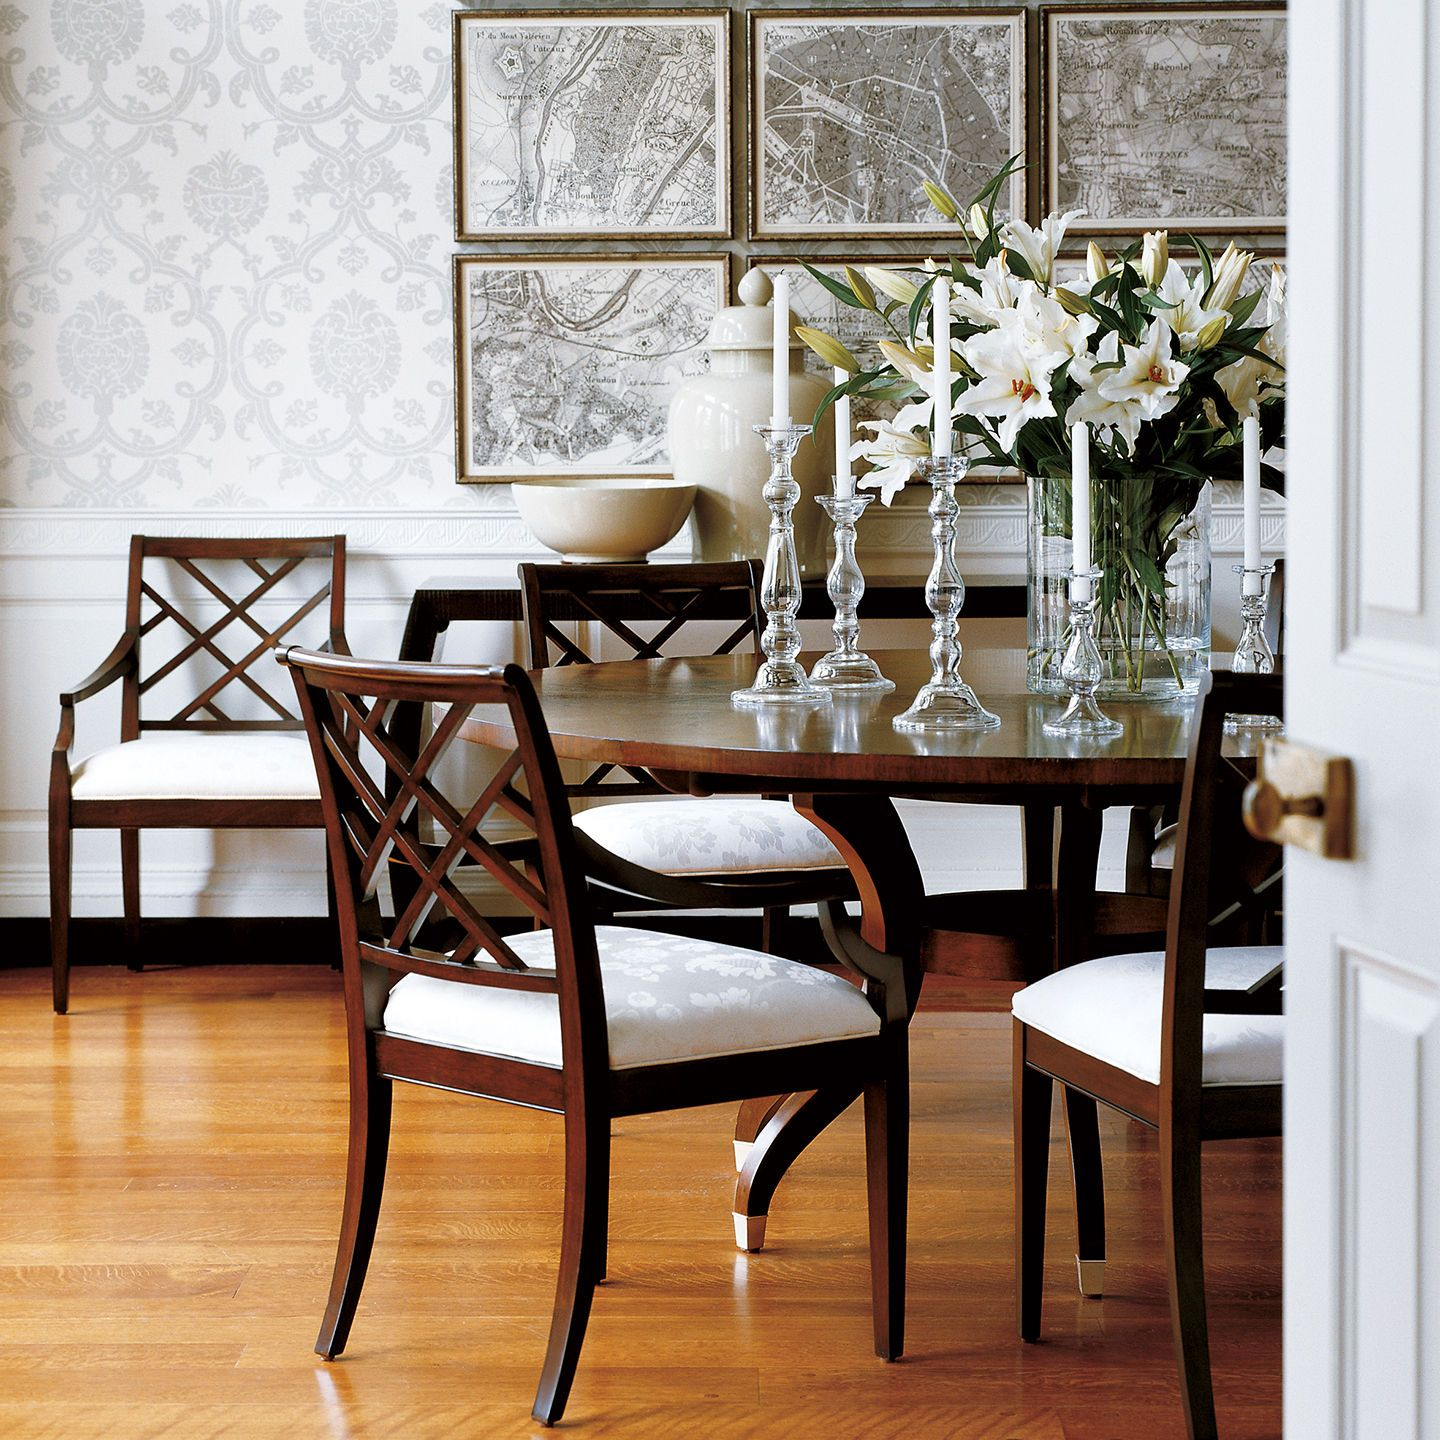 Ethan Allen Dining Room: Ethan Allen Iconics: Ashcroft Dining Table